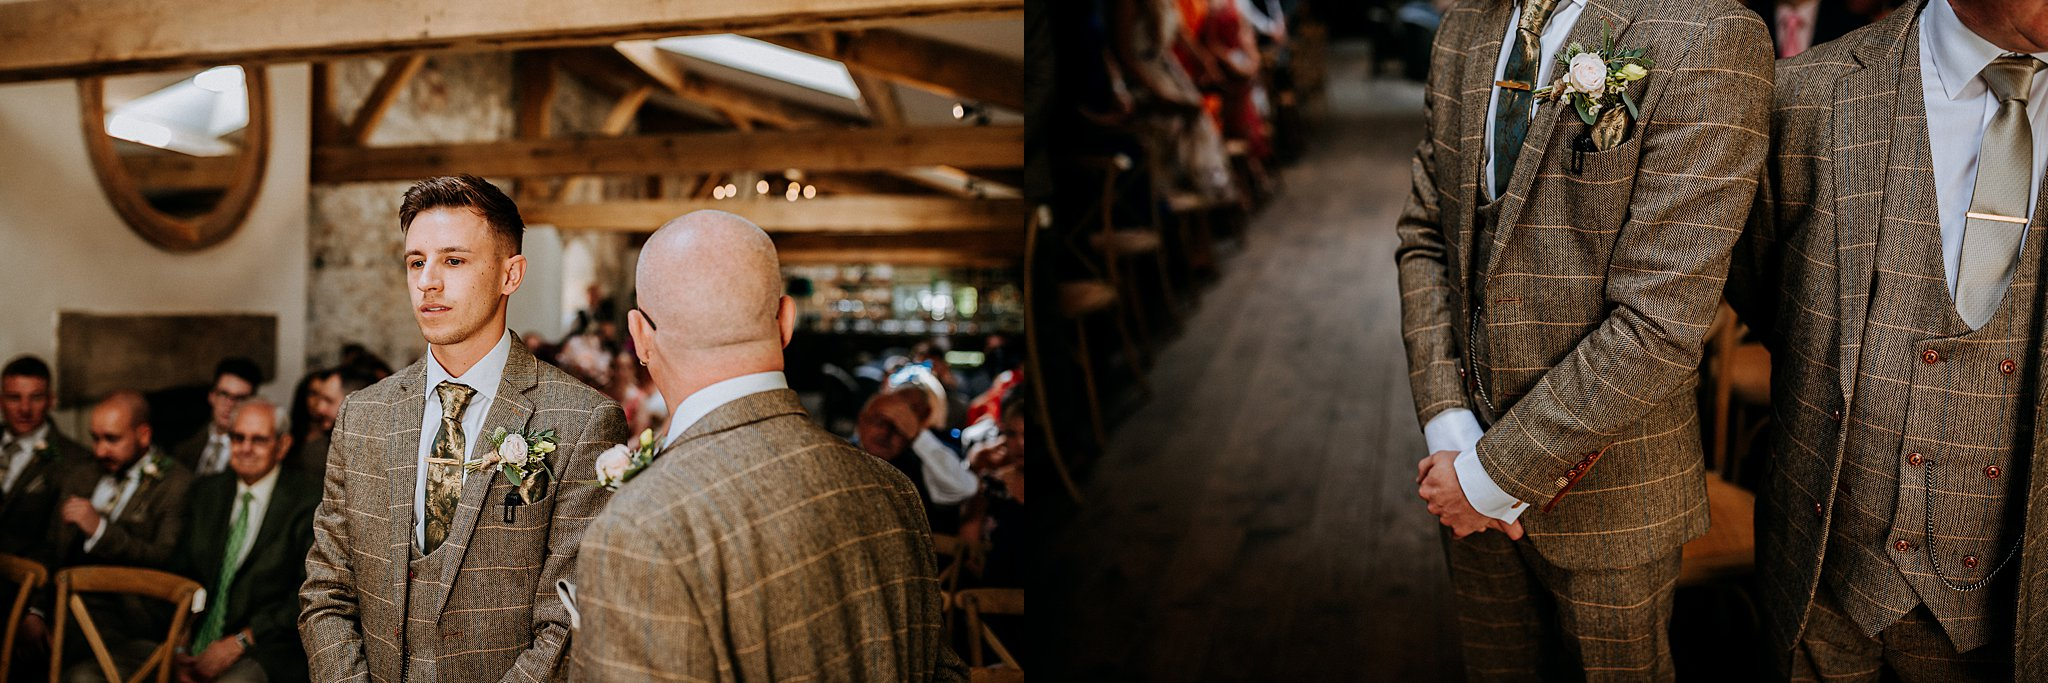 Natural Wedding photographer middleton lodge